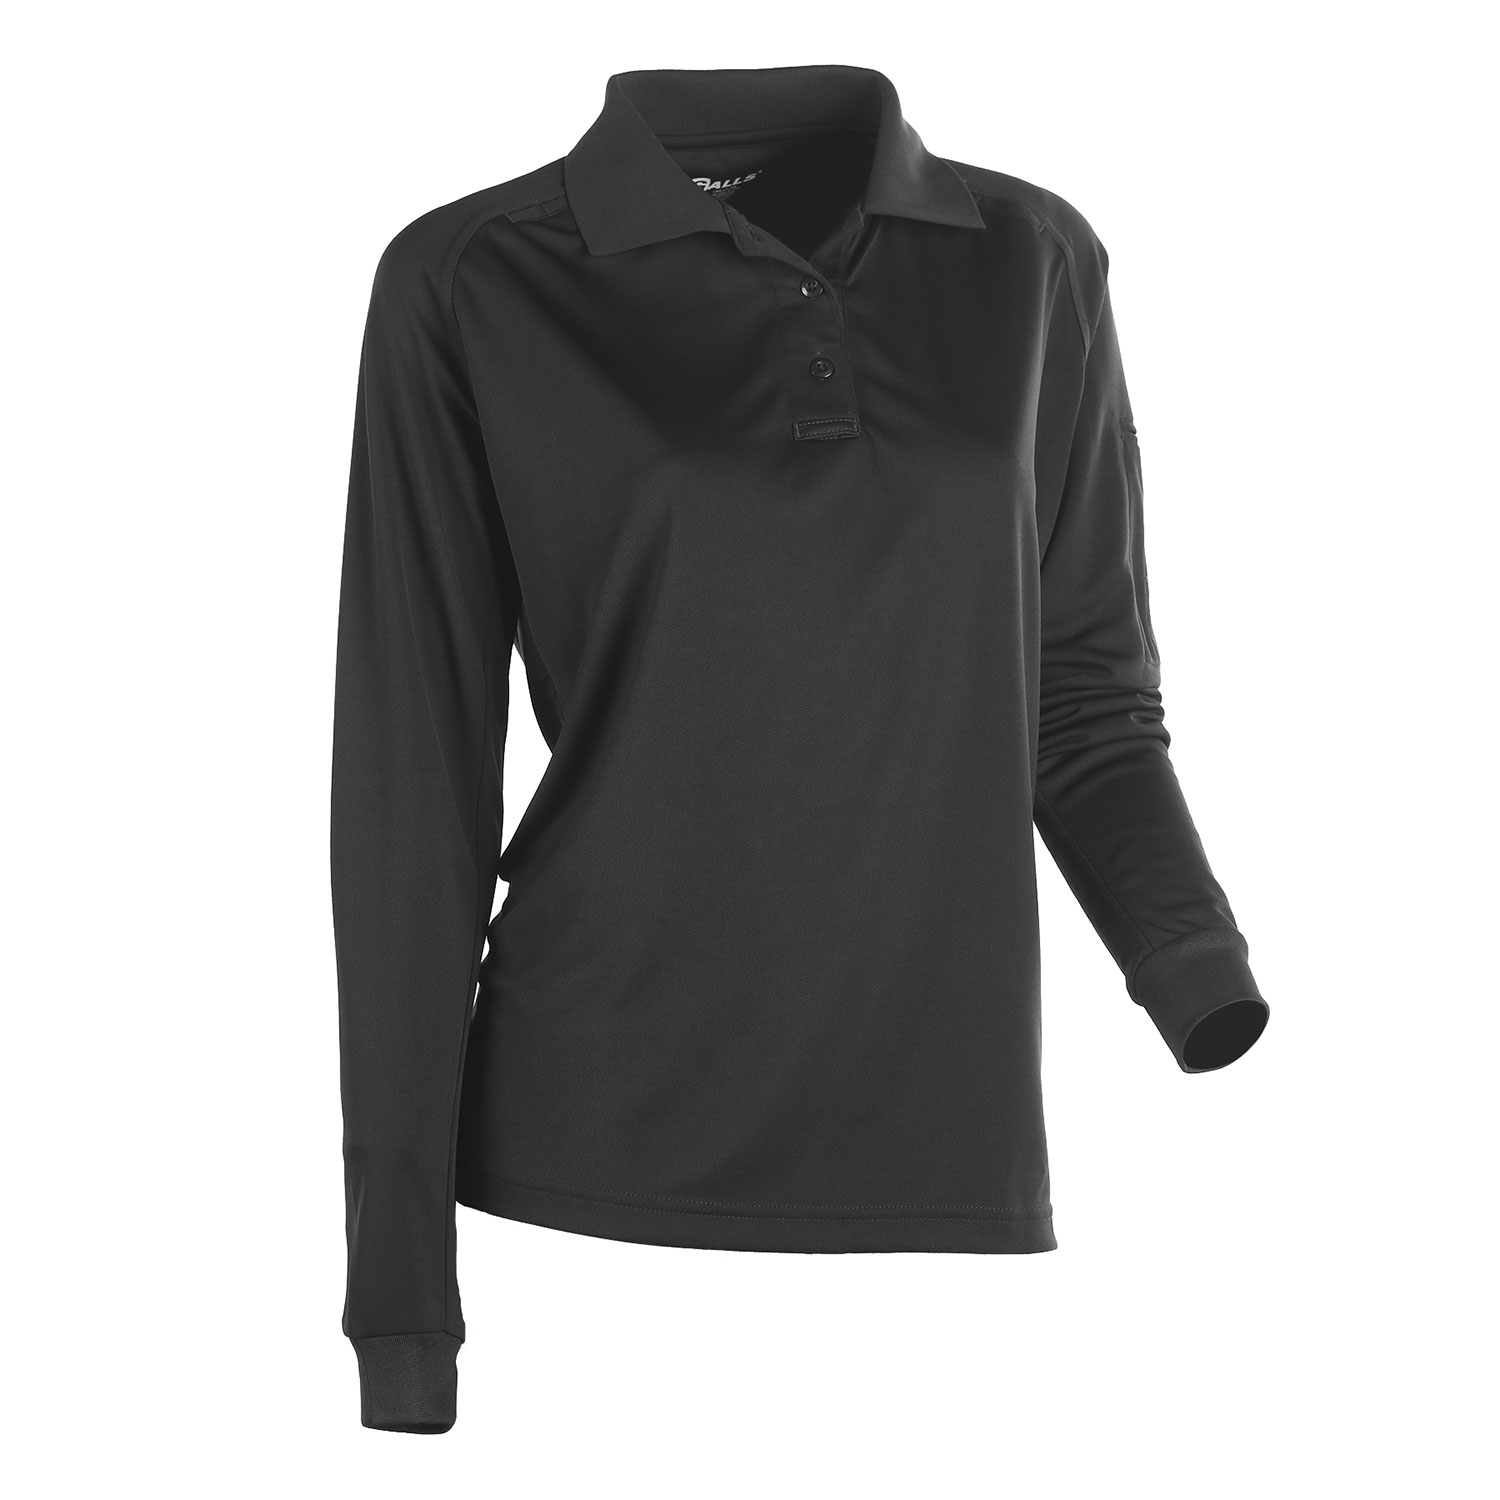 Galls Women's Tac Force Lightweight Long Sleeve Polo